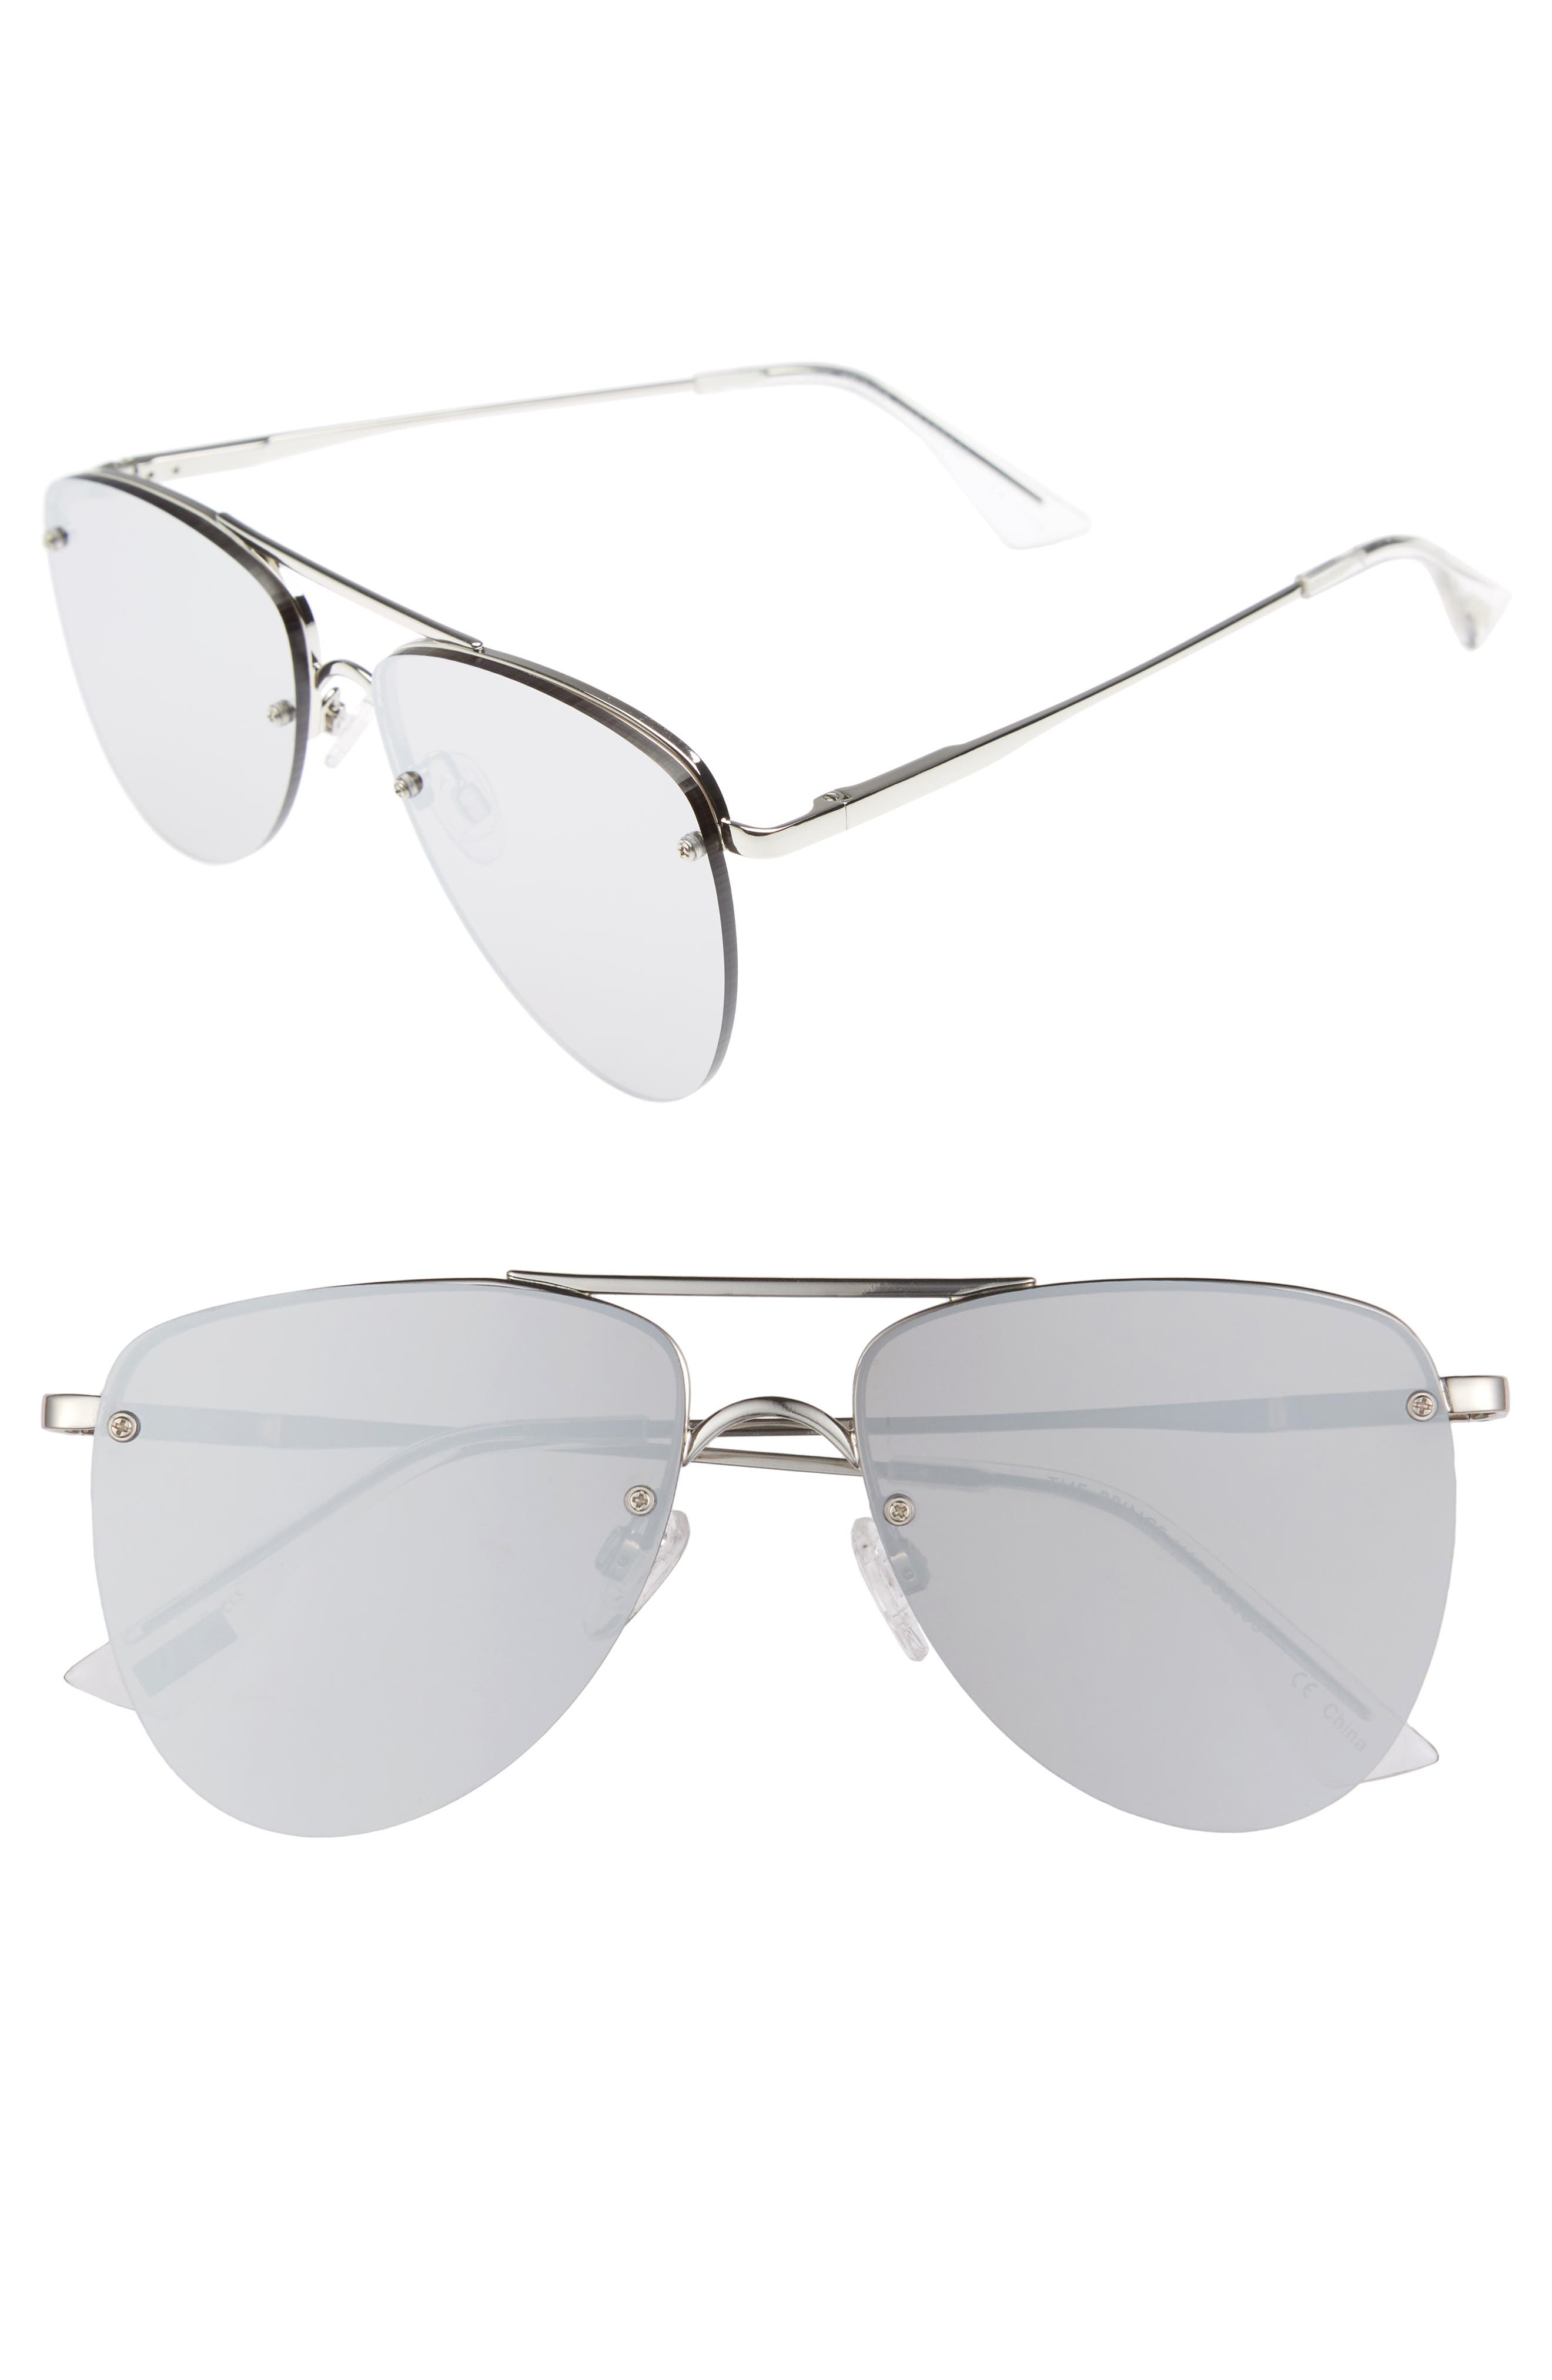 Main Image - Le Specs The Prince 57mm Aviator Sunglasses